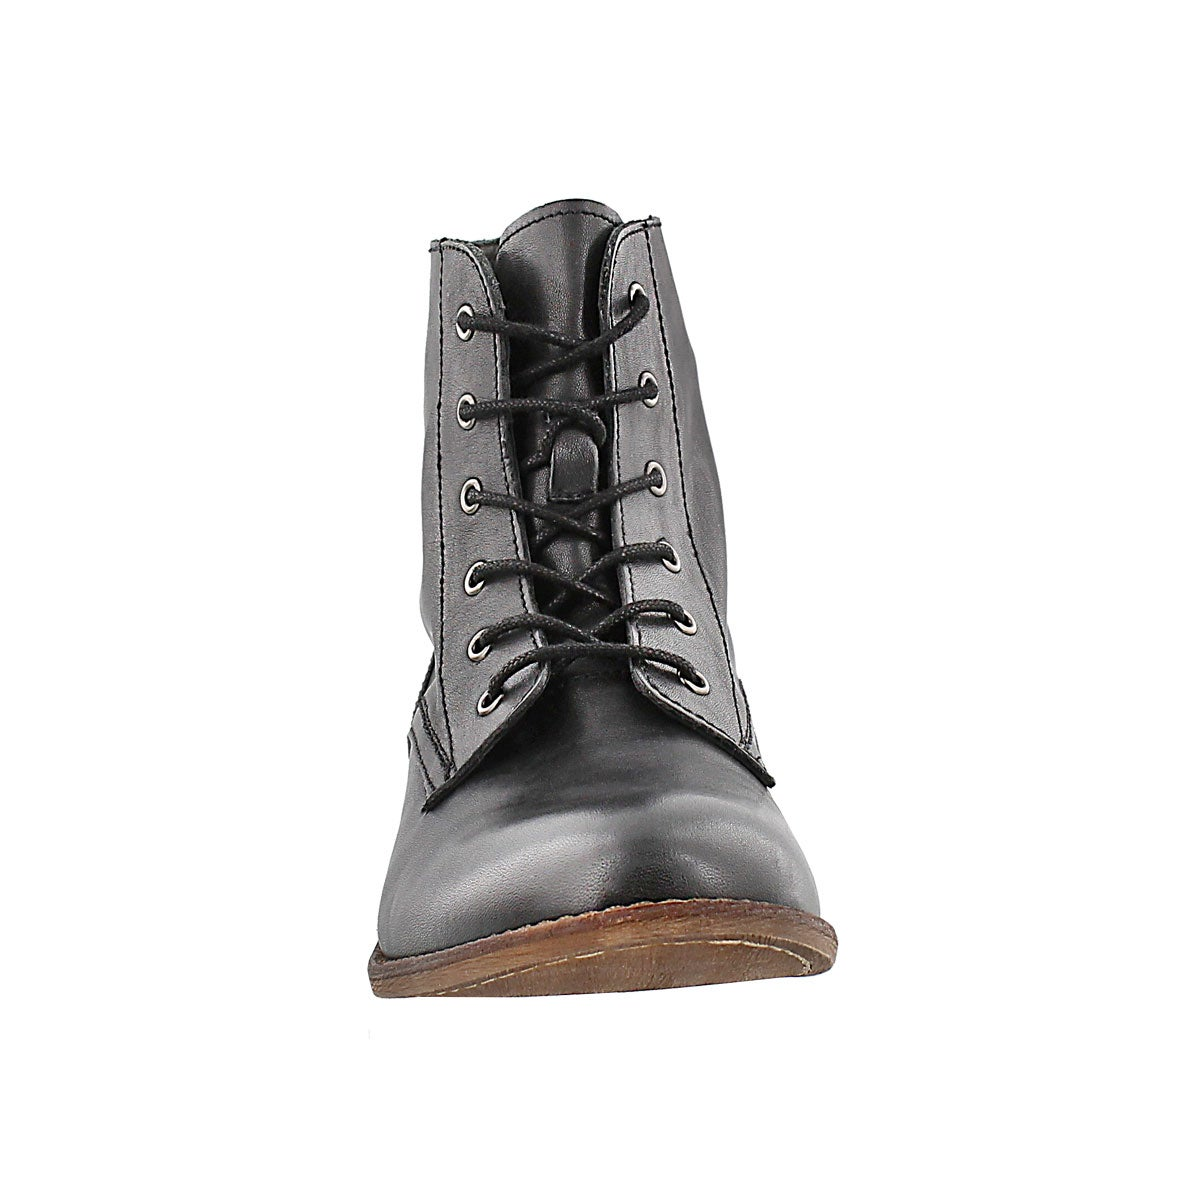 Lds Lana black leather lace up boot